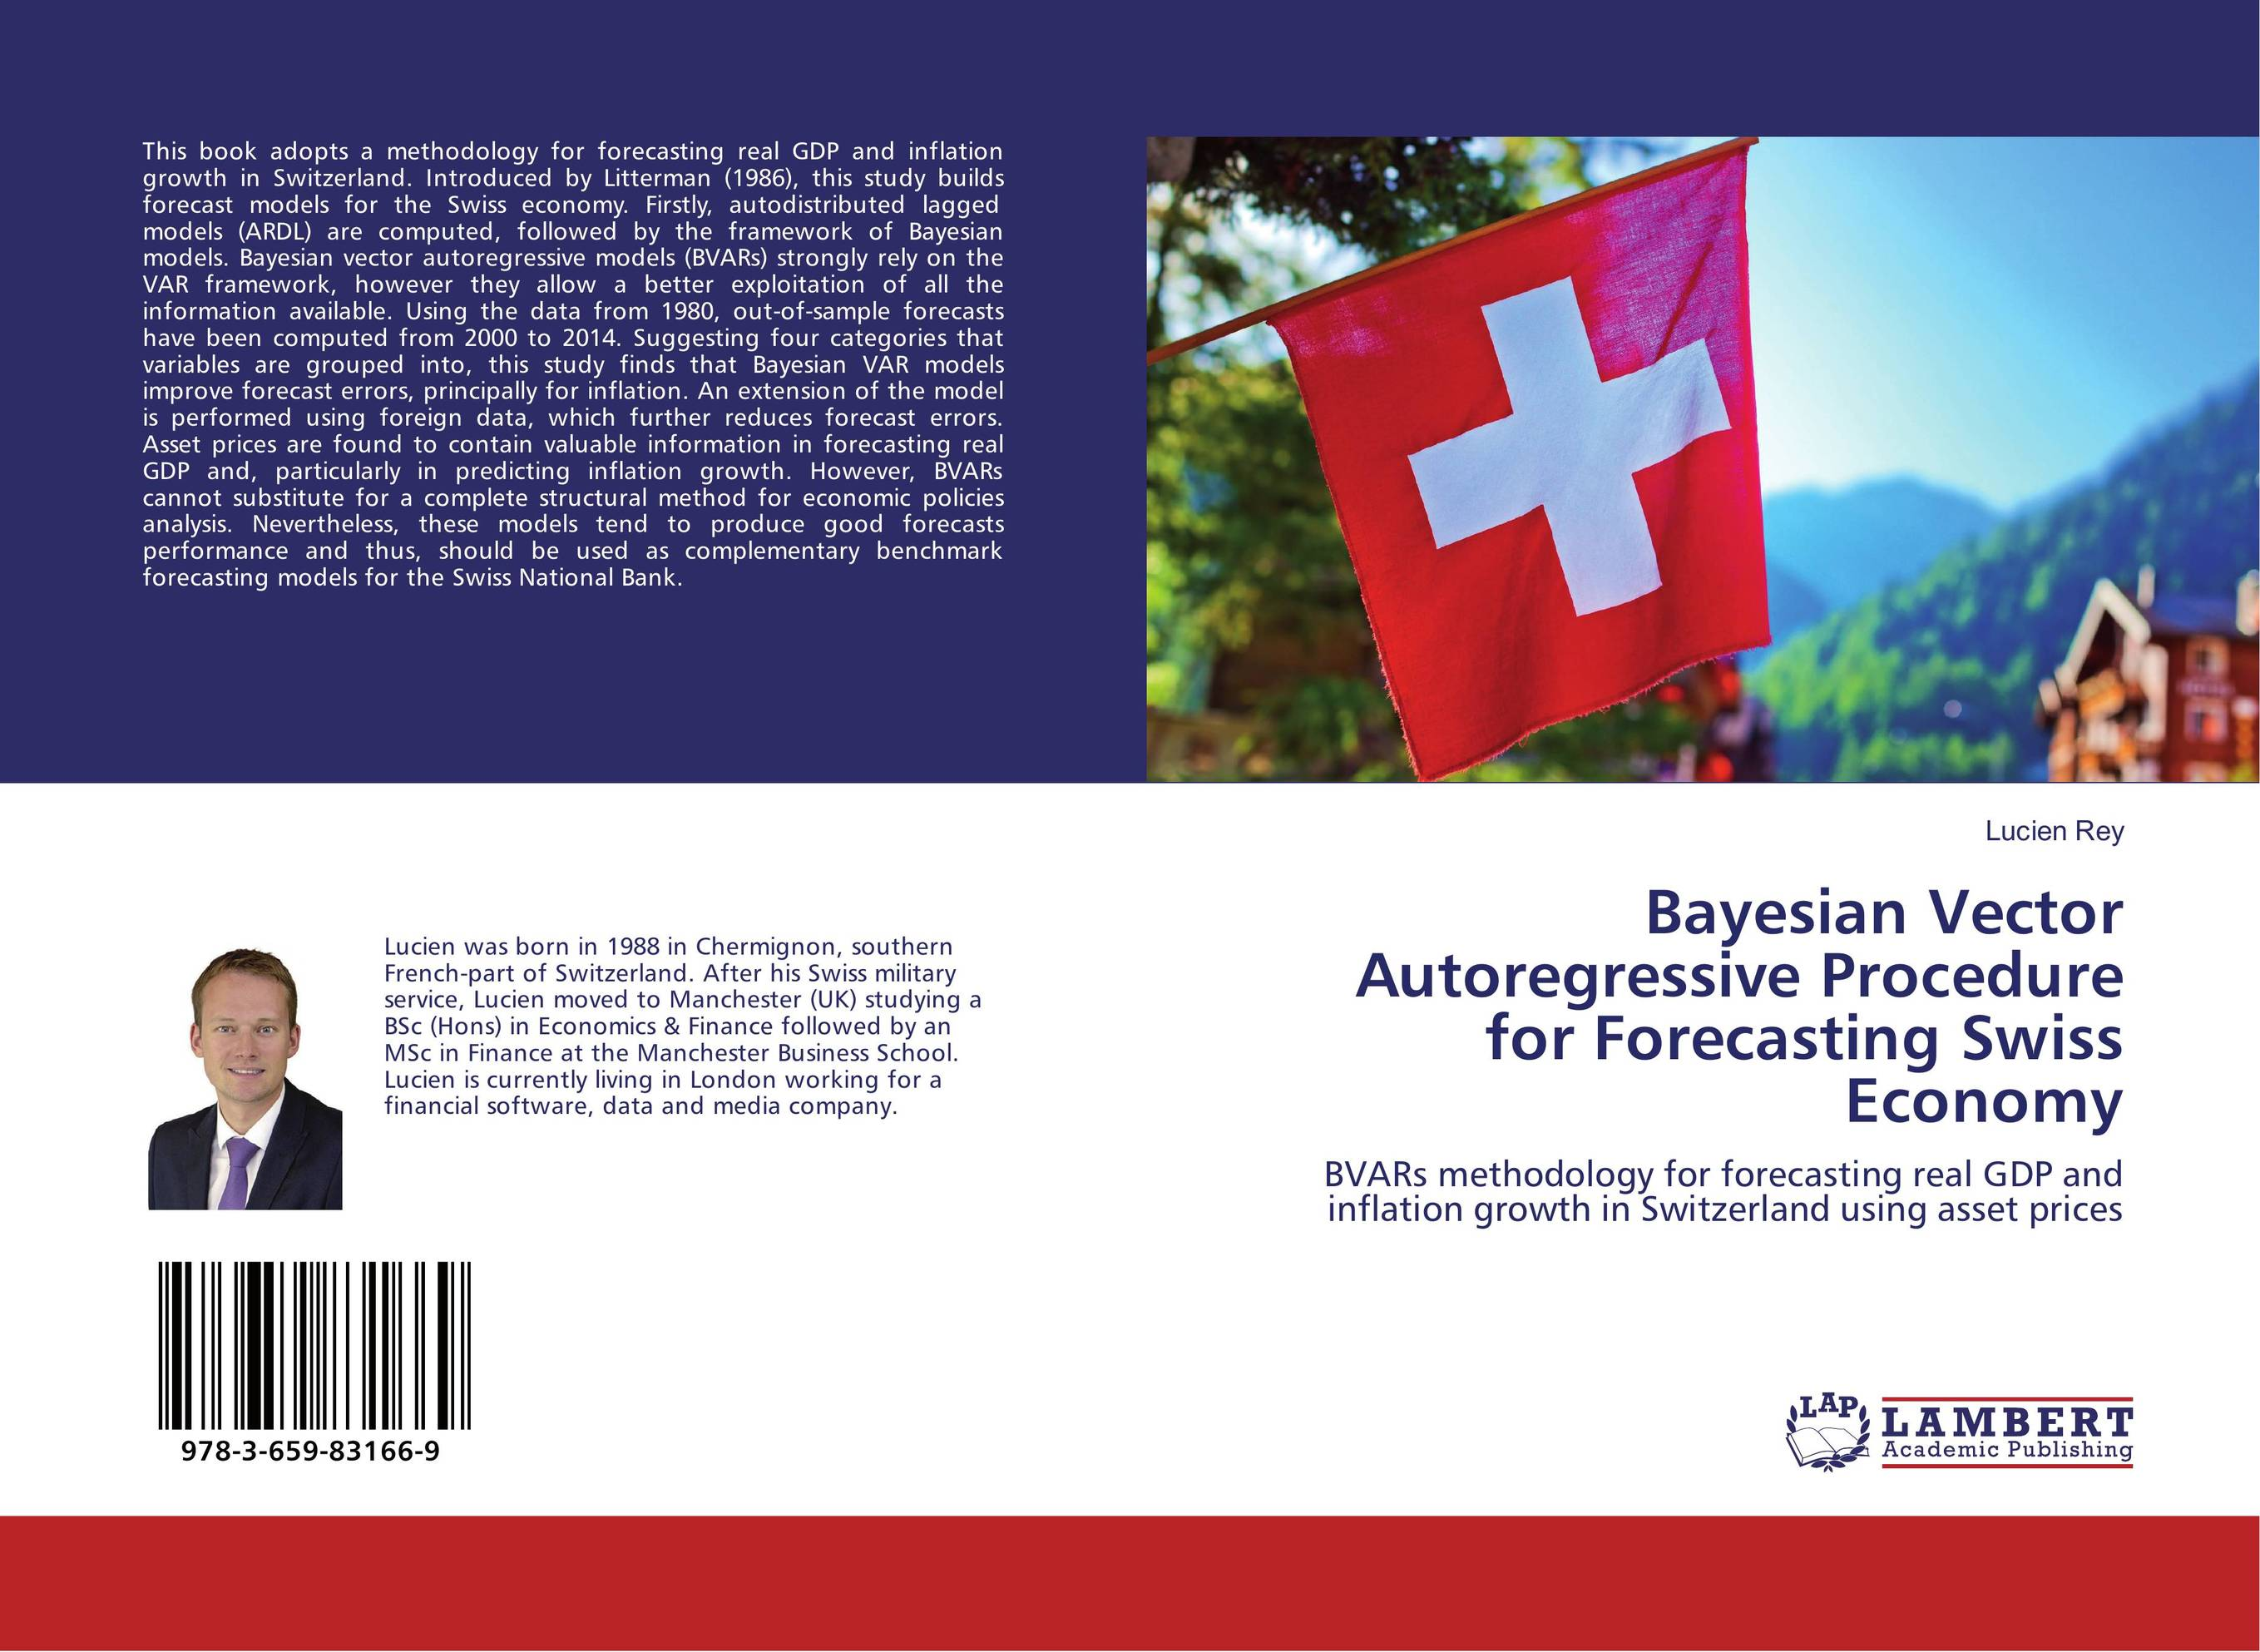 Bayesian Vector Autoregressive Procedure for Forecasting Swiss Economy charles chase w demand driven forecasting a structured approach to forecasting